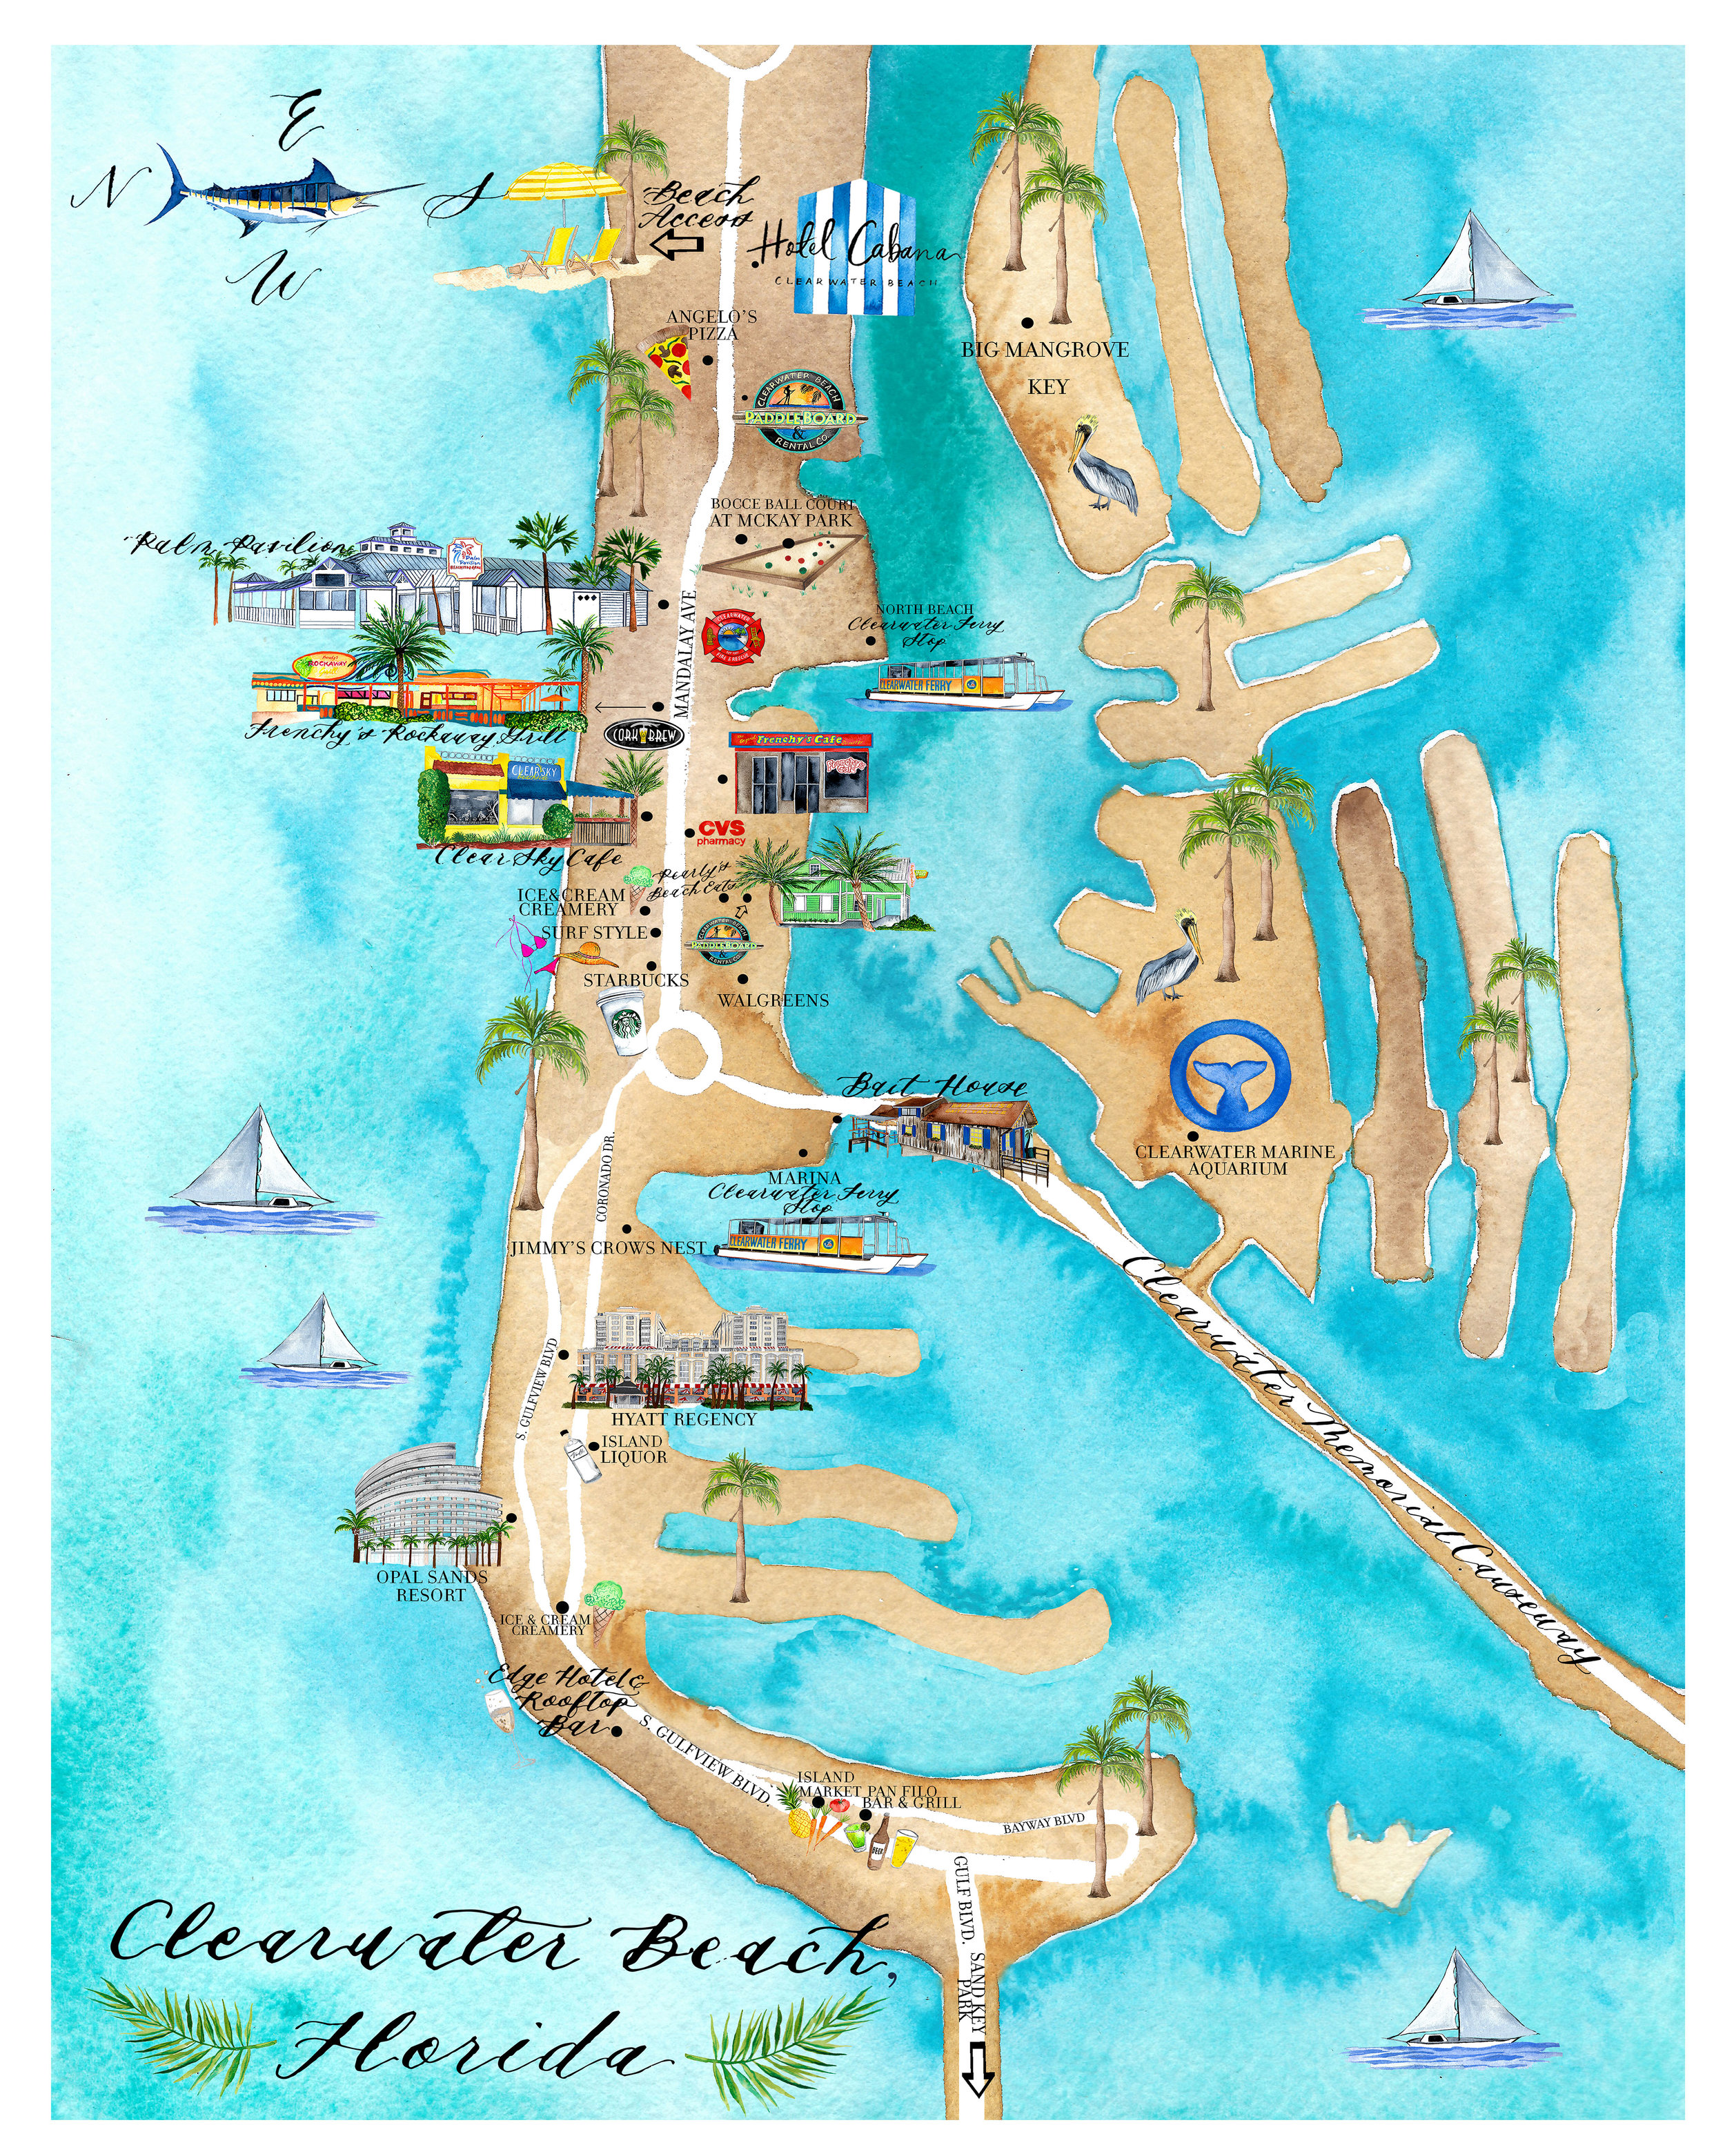 Map Of Clearwater Beach Hotels : clearwater, beach, hotels, BEACH, HOTEL, DESIGN, INSPIRATION, GILMORE, LUXURY, INTERNATIONAL, INTERIOR, DESIGNER, TAMPA-NY-LA